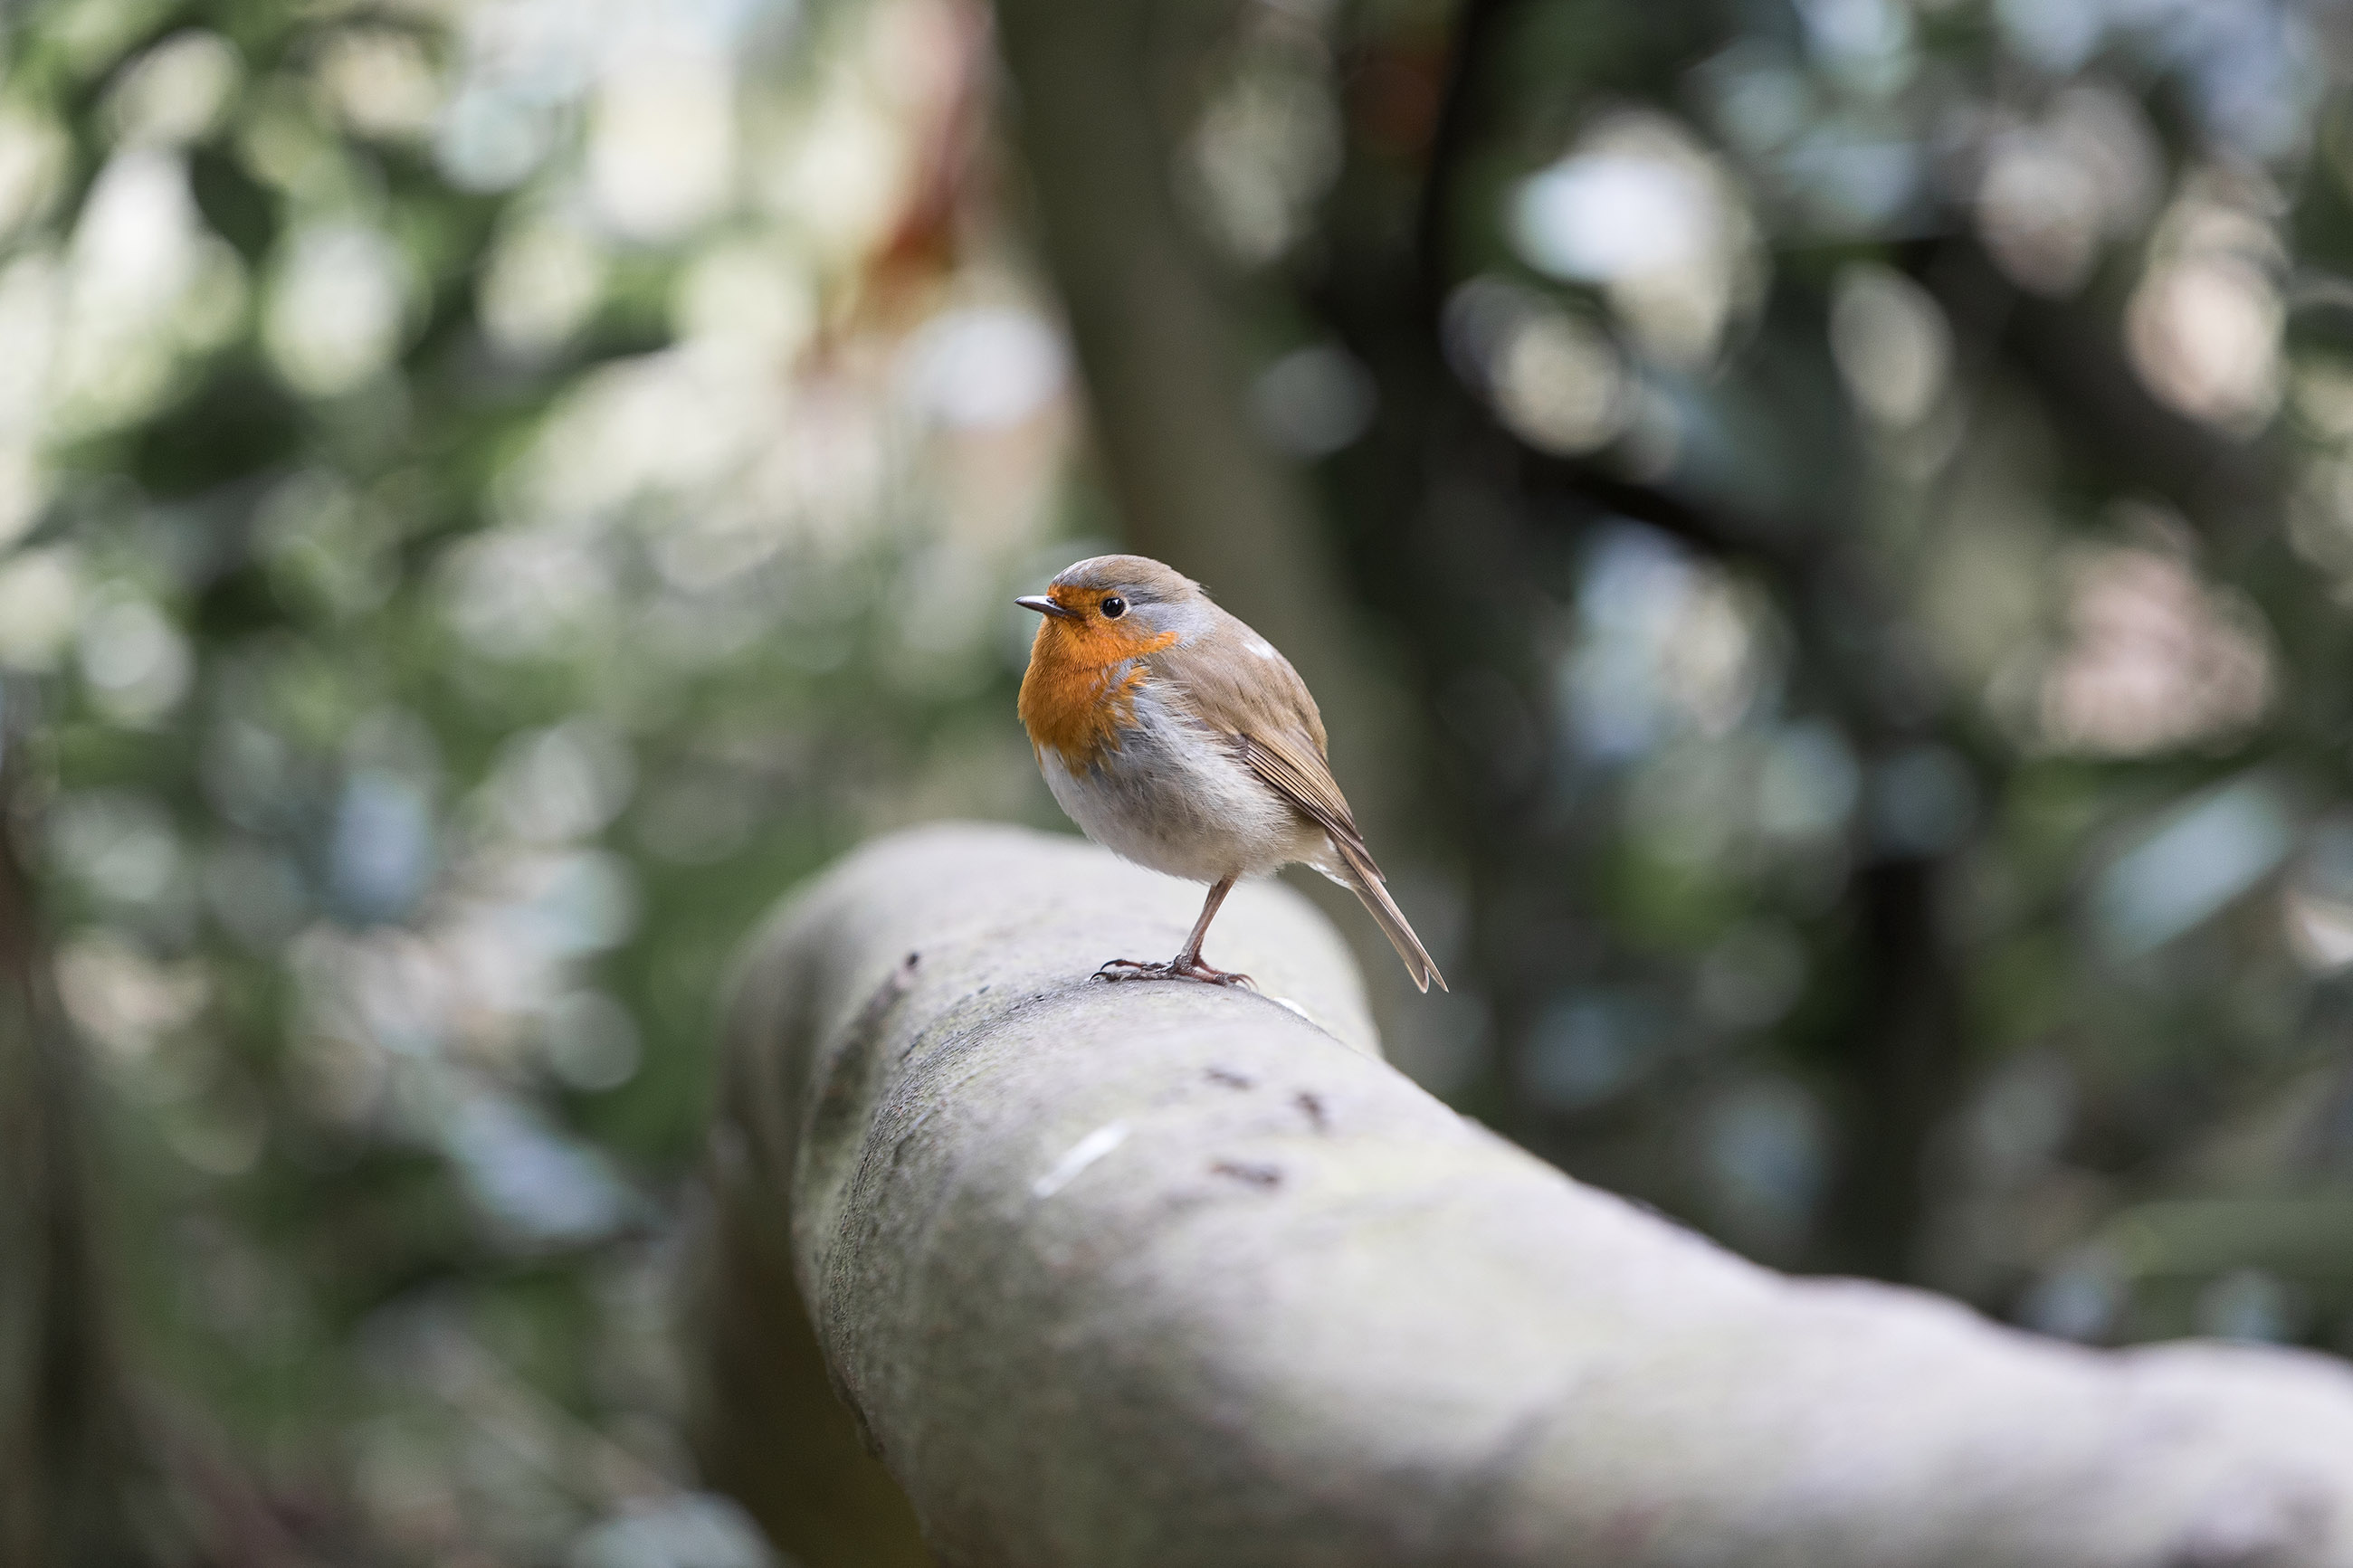 dublin-ireland-europe-phoenixpark-park-bird-robin-famous-place-city-themovinglens-colourfull-travel-photography-destination-life